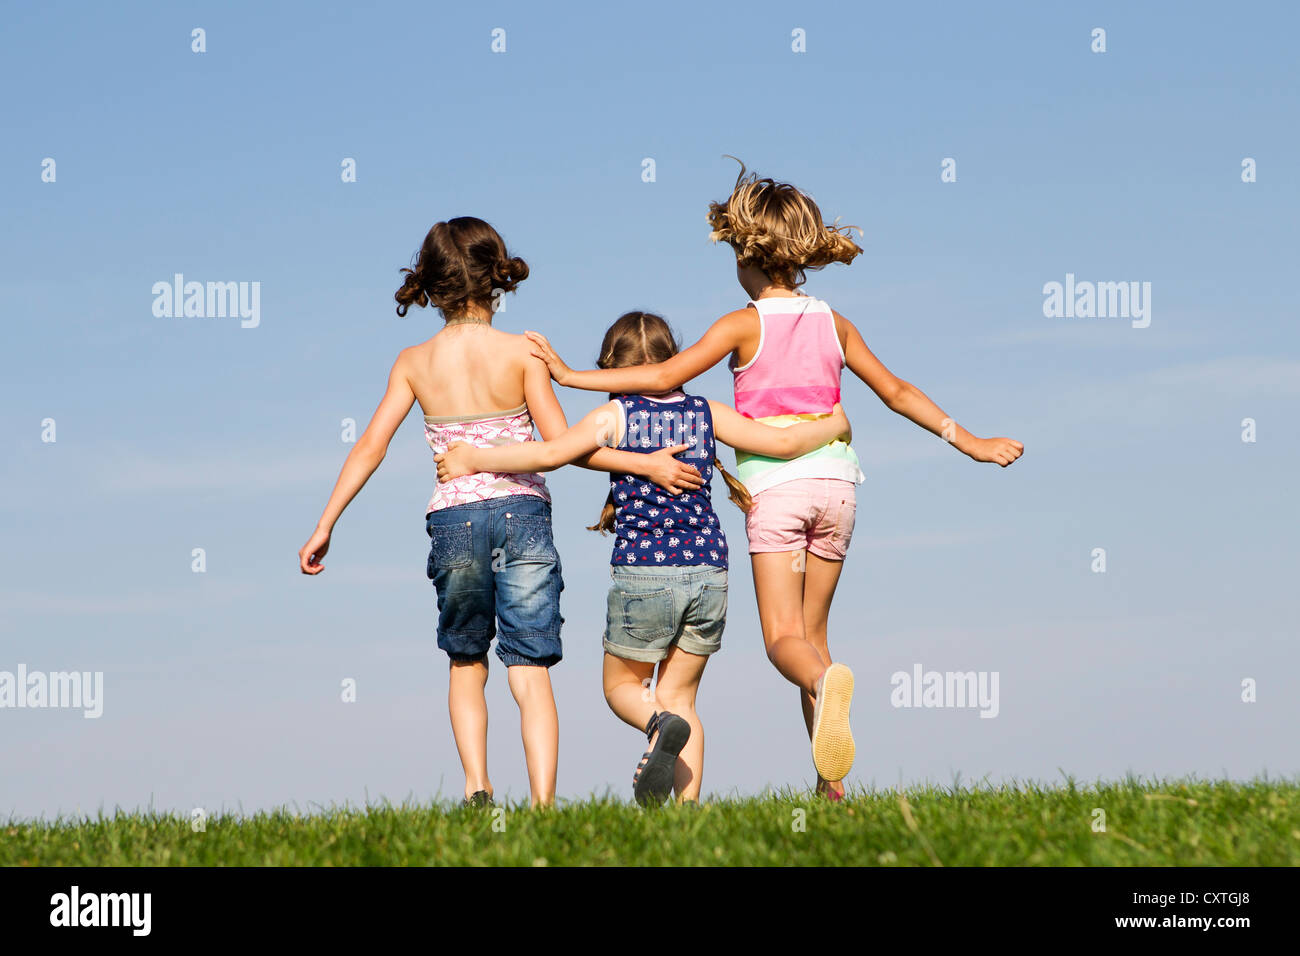 Girls playing together outdoors - Stock Image